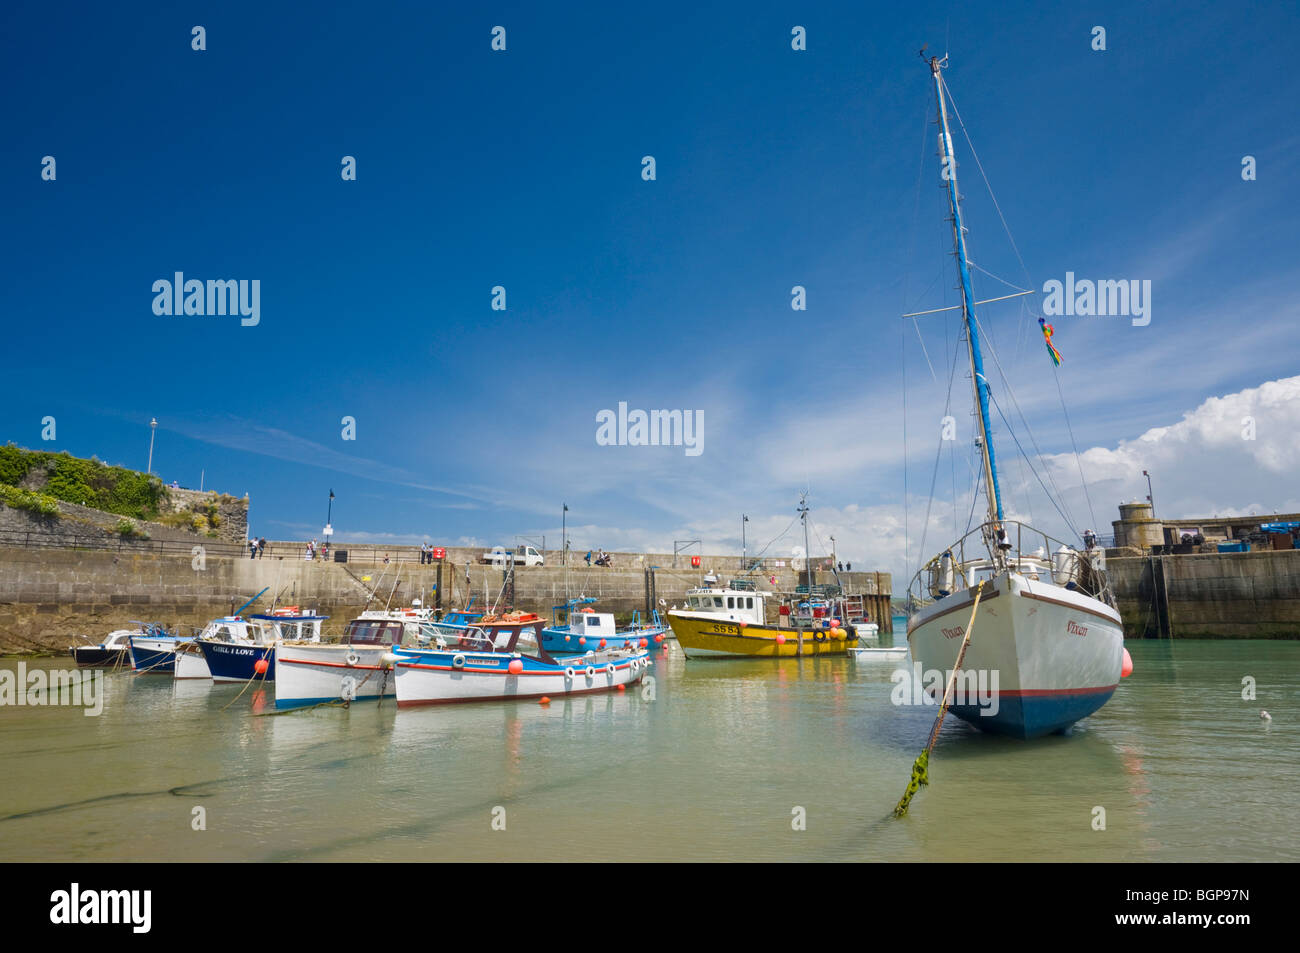 Small fishing boats and a yacht at low tide Newquay harbour Newquay Cornwall England GB UK EU Europe - Stock Image